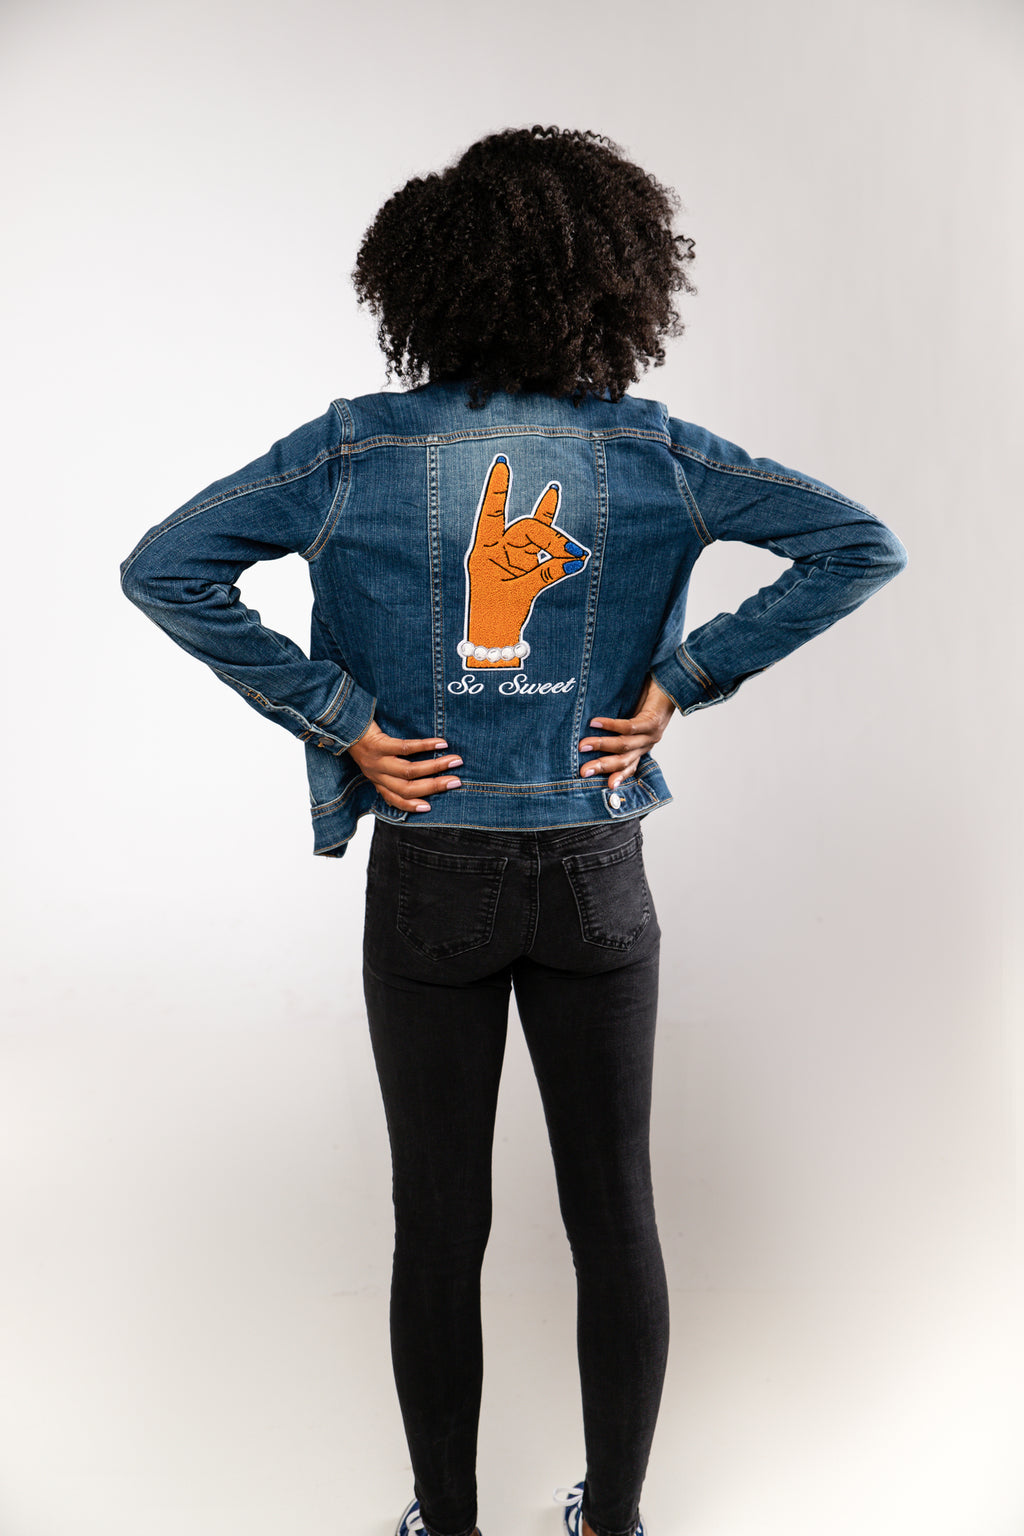 So Sweet Denim Jacket - Dark Wash